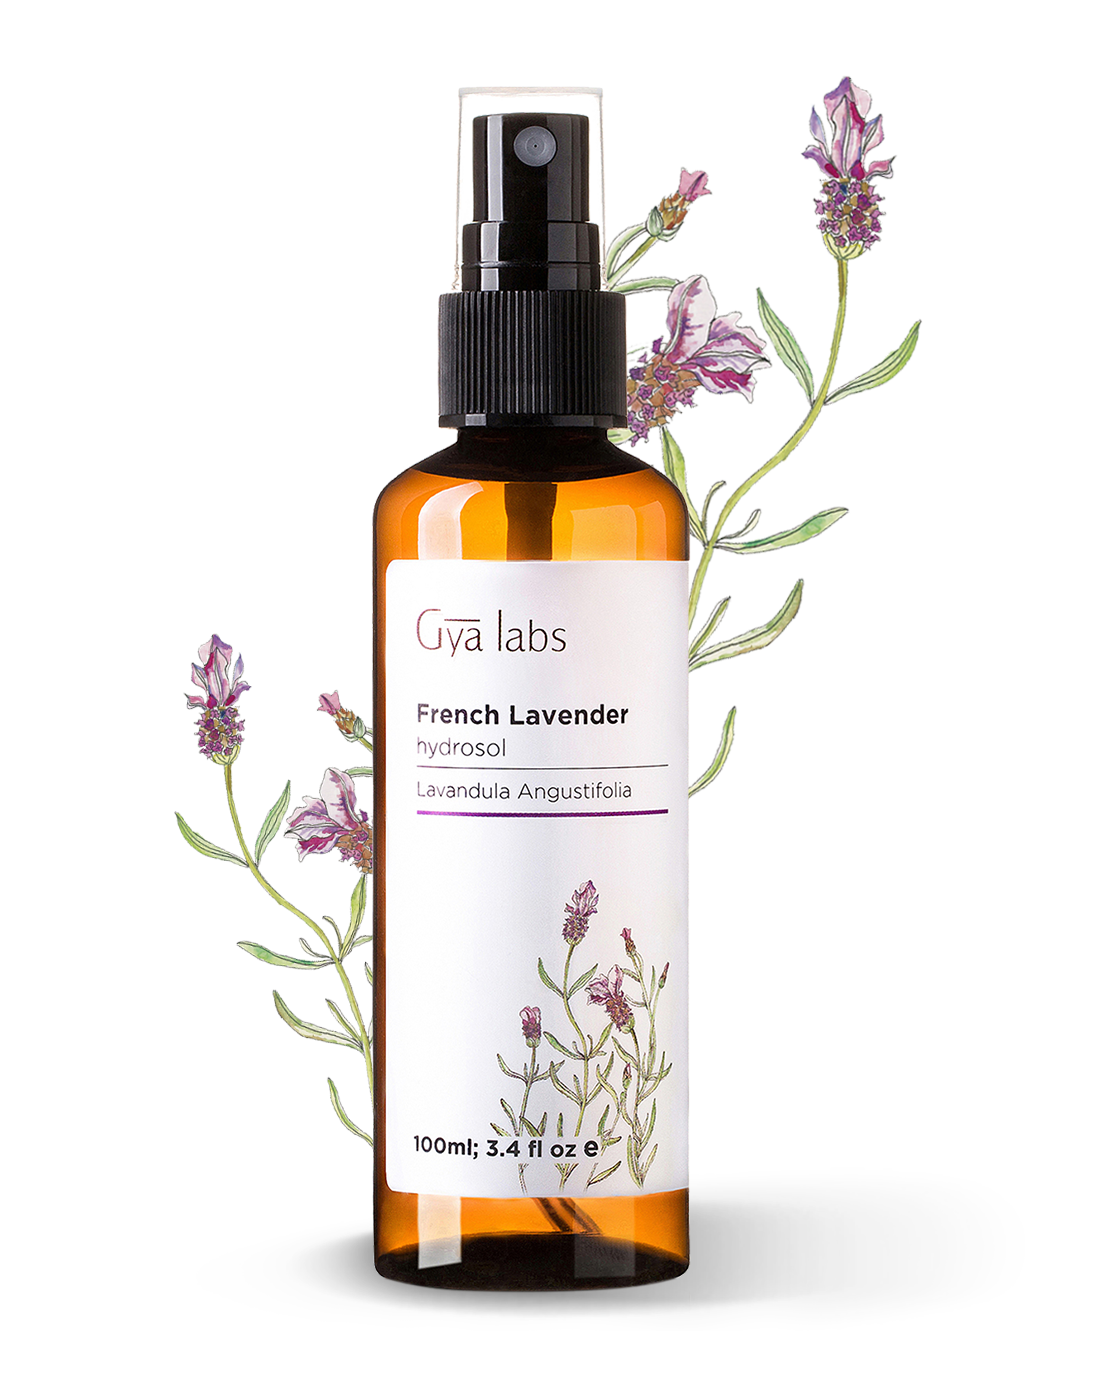 French Lavender Hydrosol spray